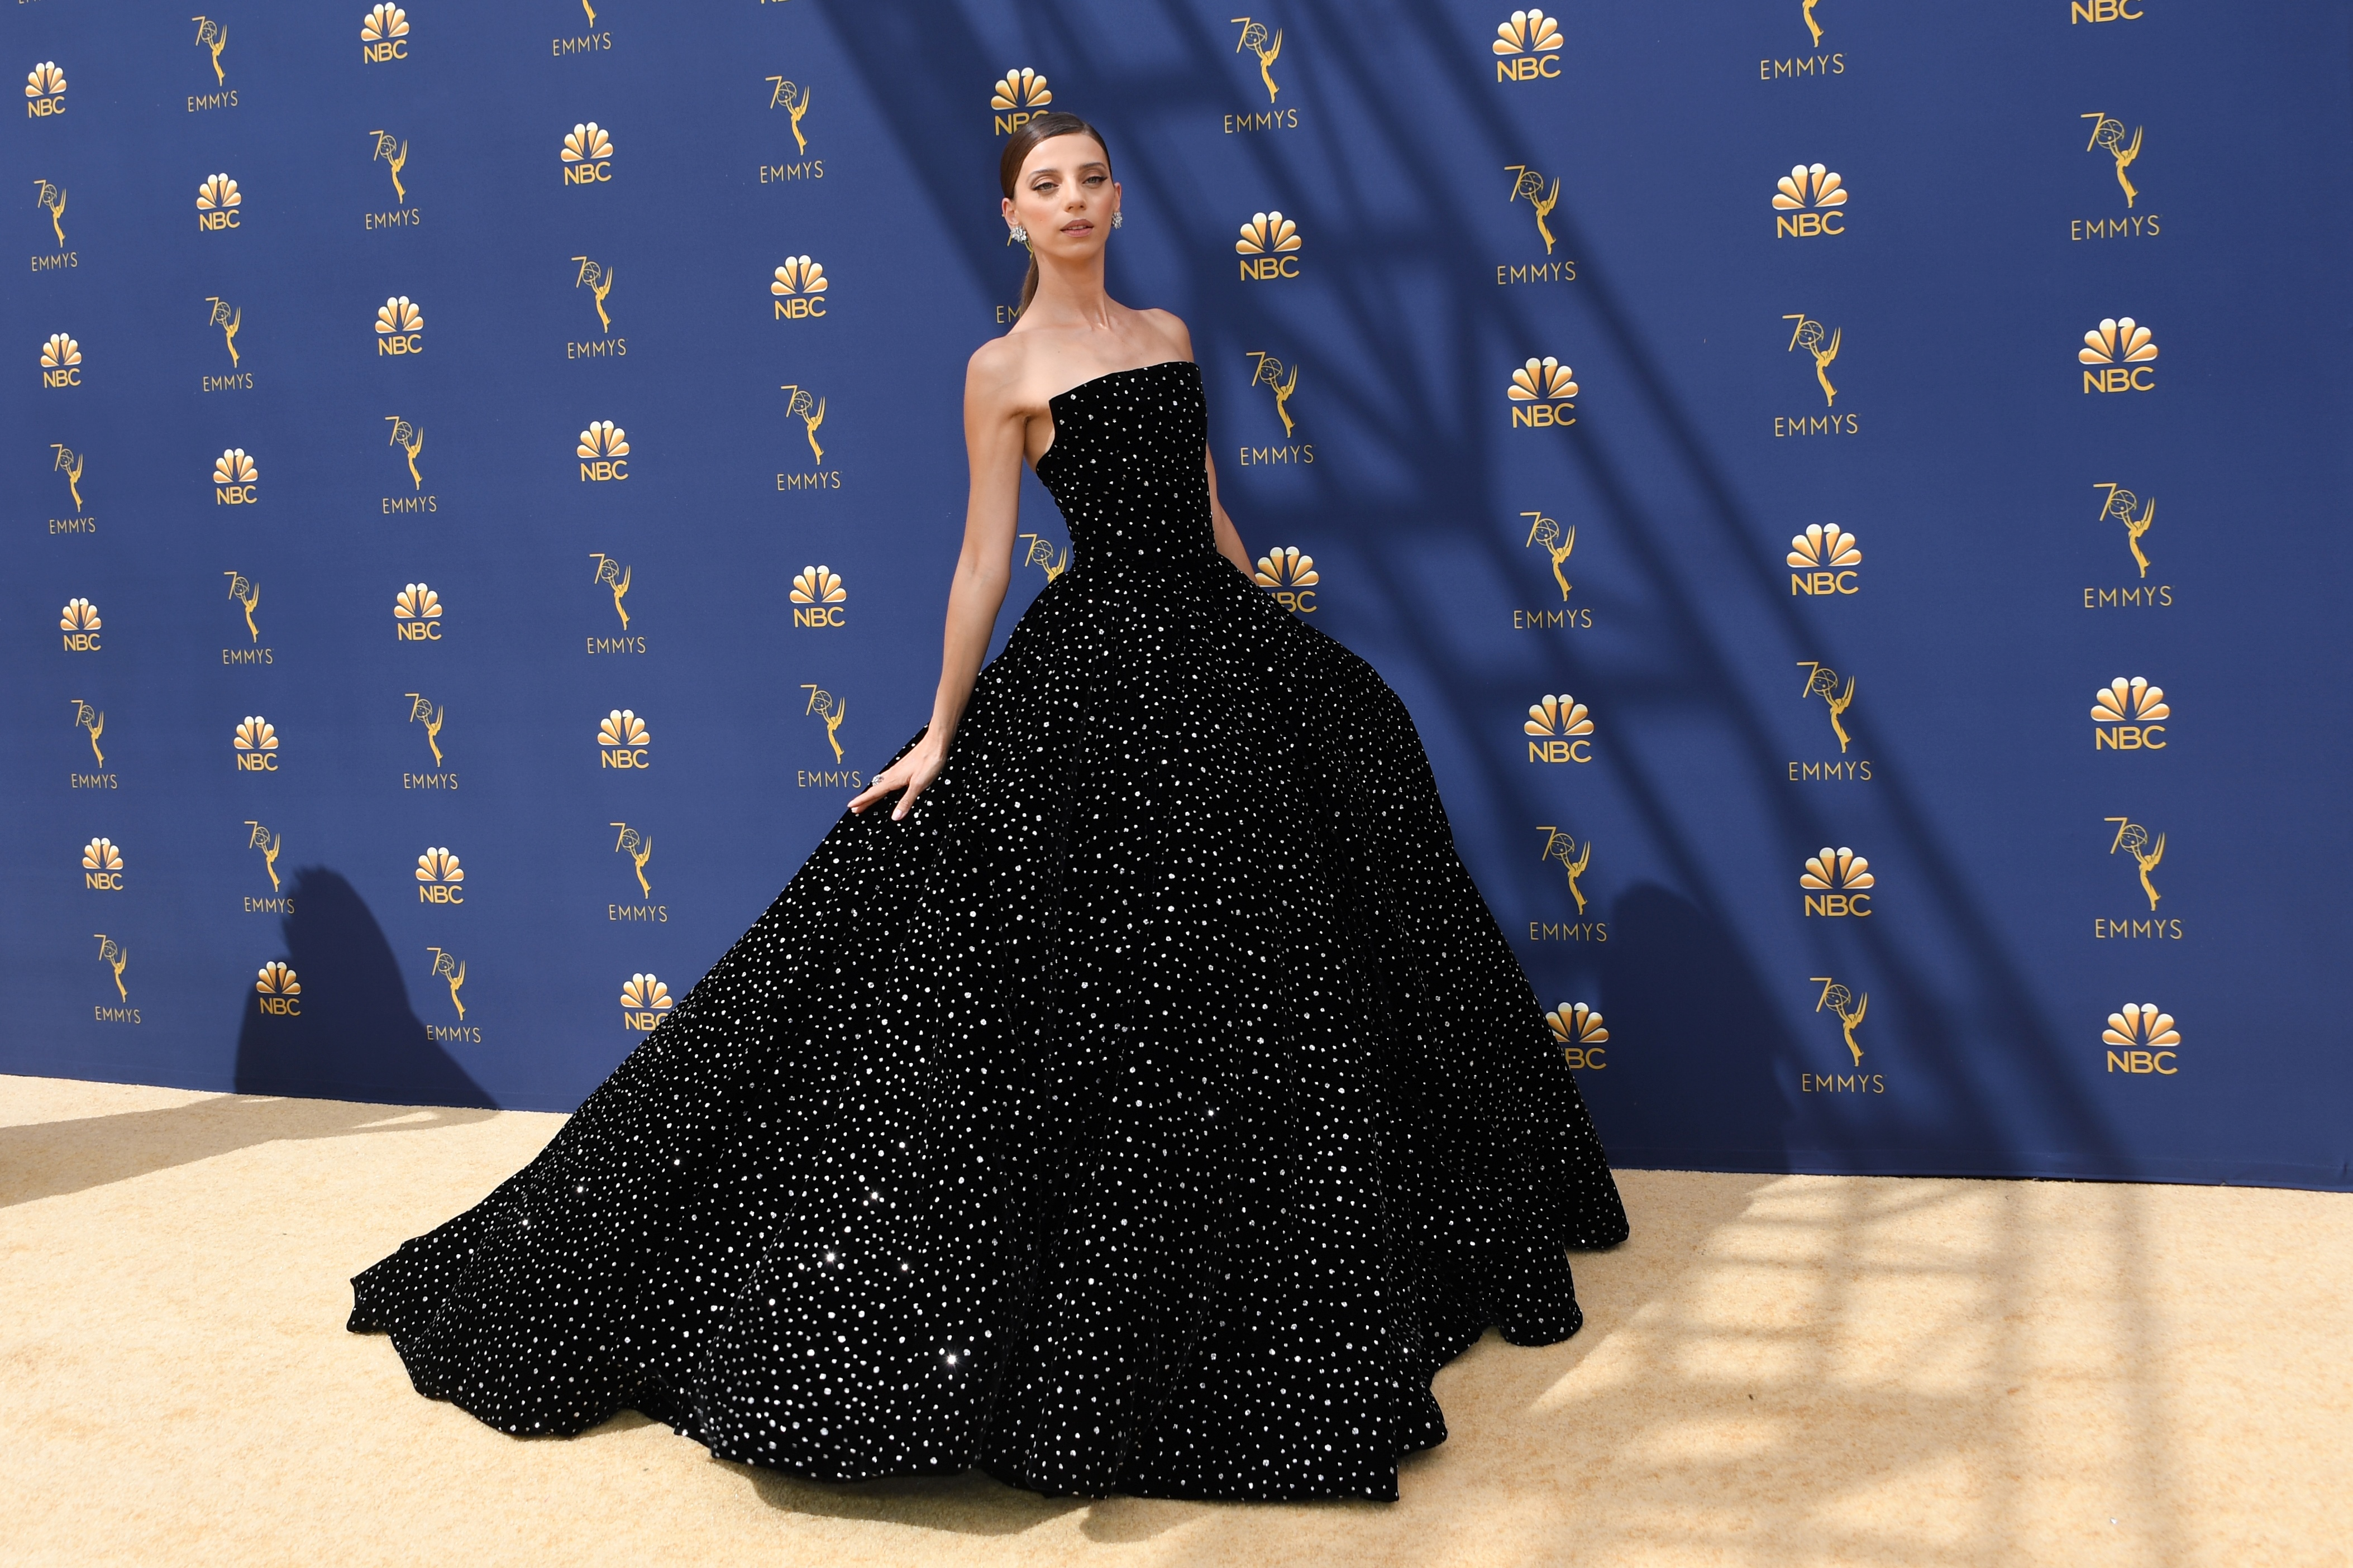 Angela Sarafyan arrives at the 70th Emmy Awards at the Microsoft Theatre in Los Angeles on Sept. 17.